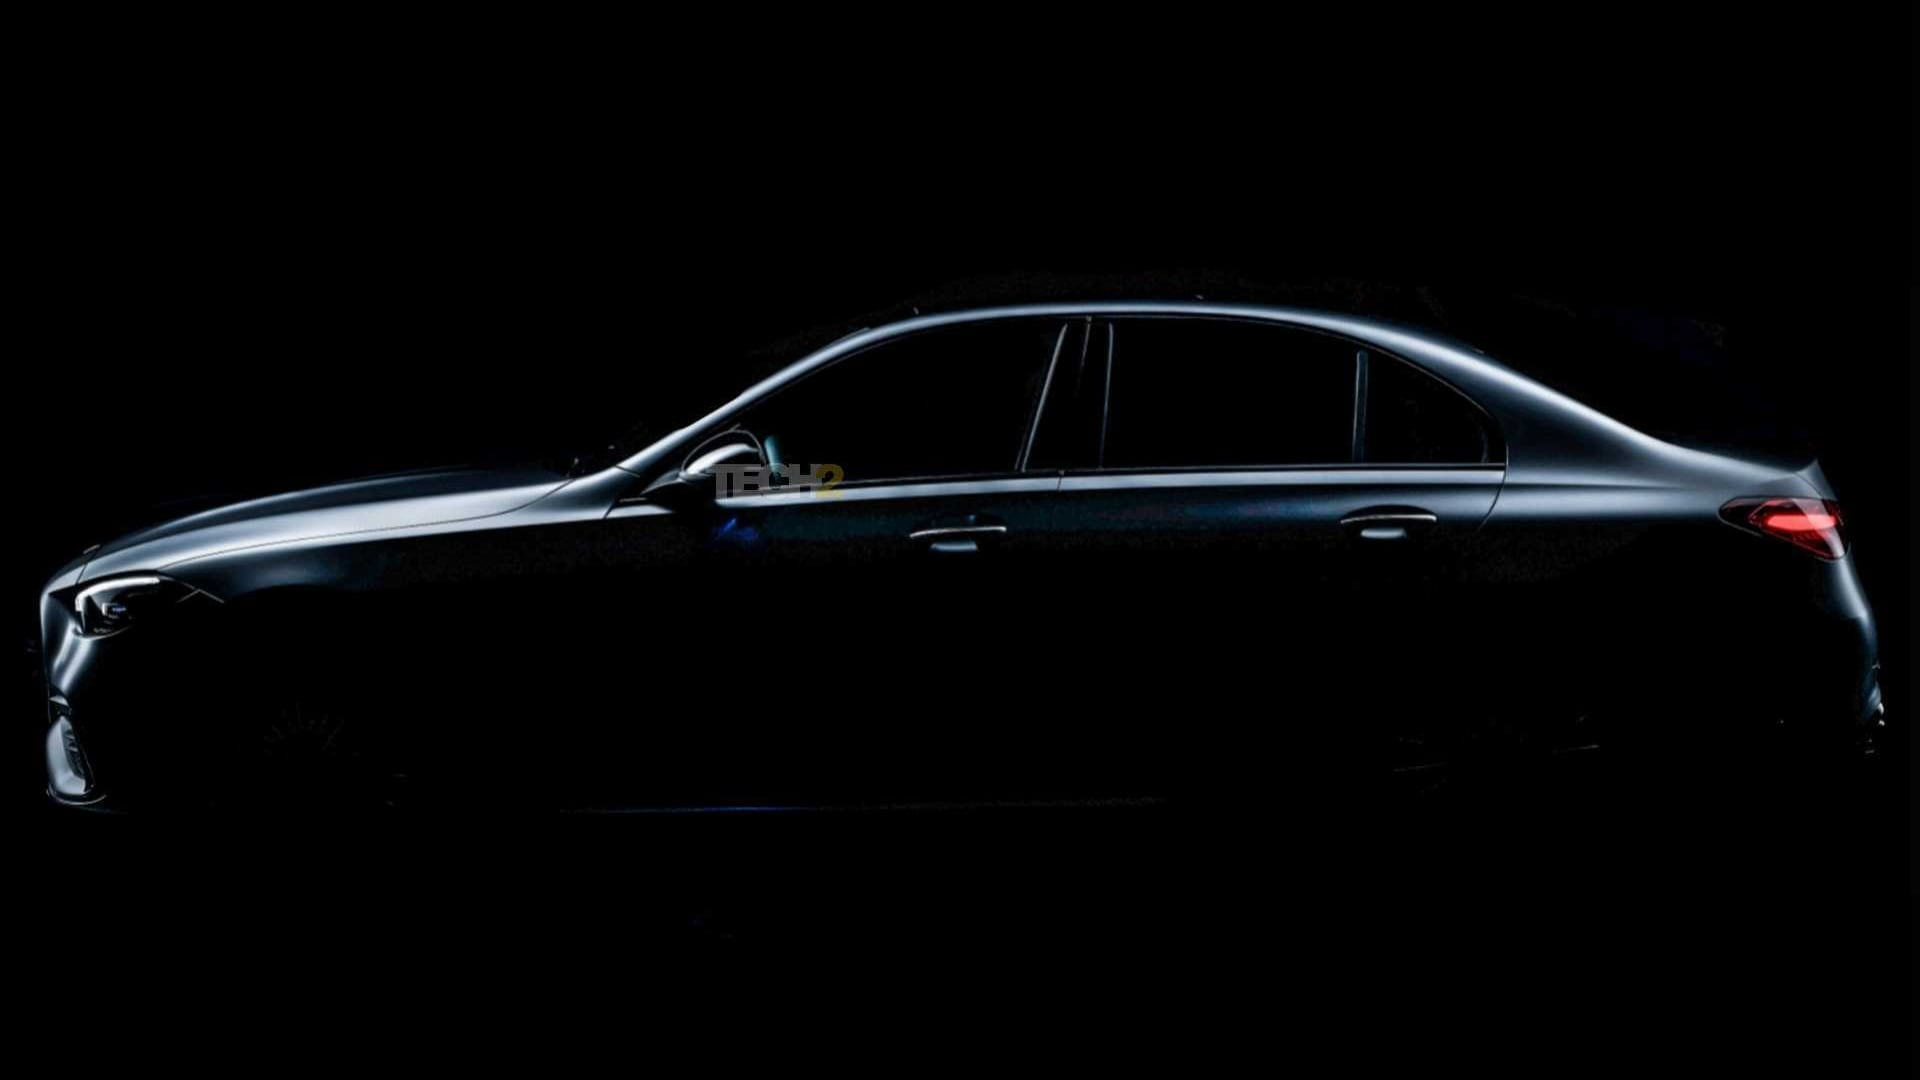 Fifth-generation Mercedes-Benz C-Class to make its global debut on 23 February